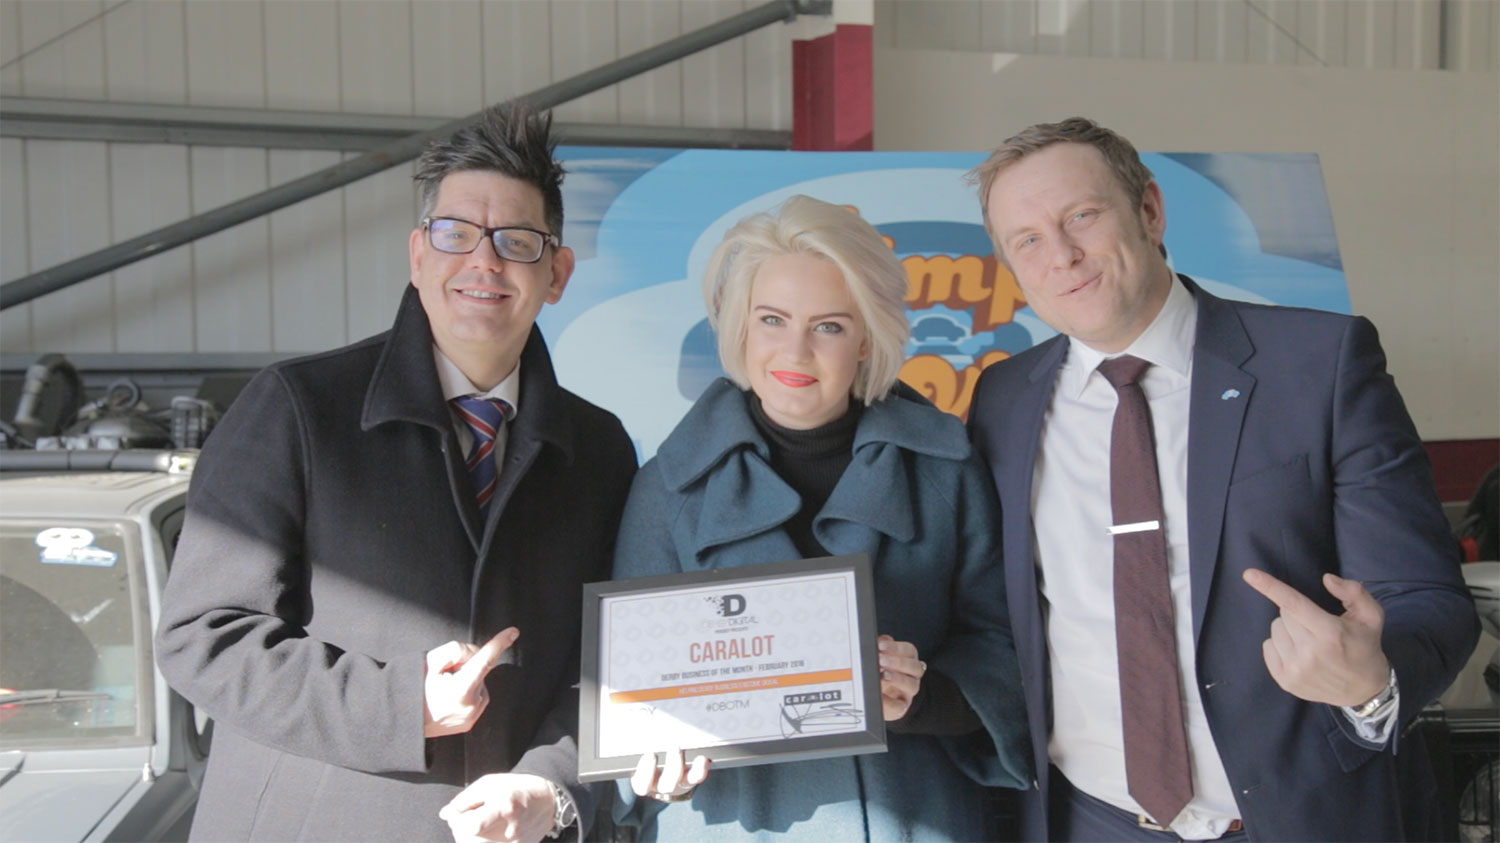 Harriet Taylor (middle) presenting the Caralot team with their Derby Digital Business of the Month award